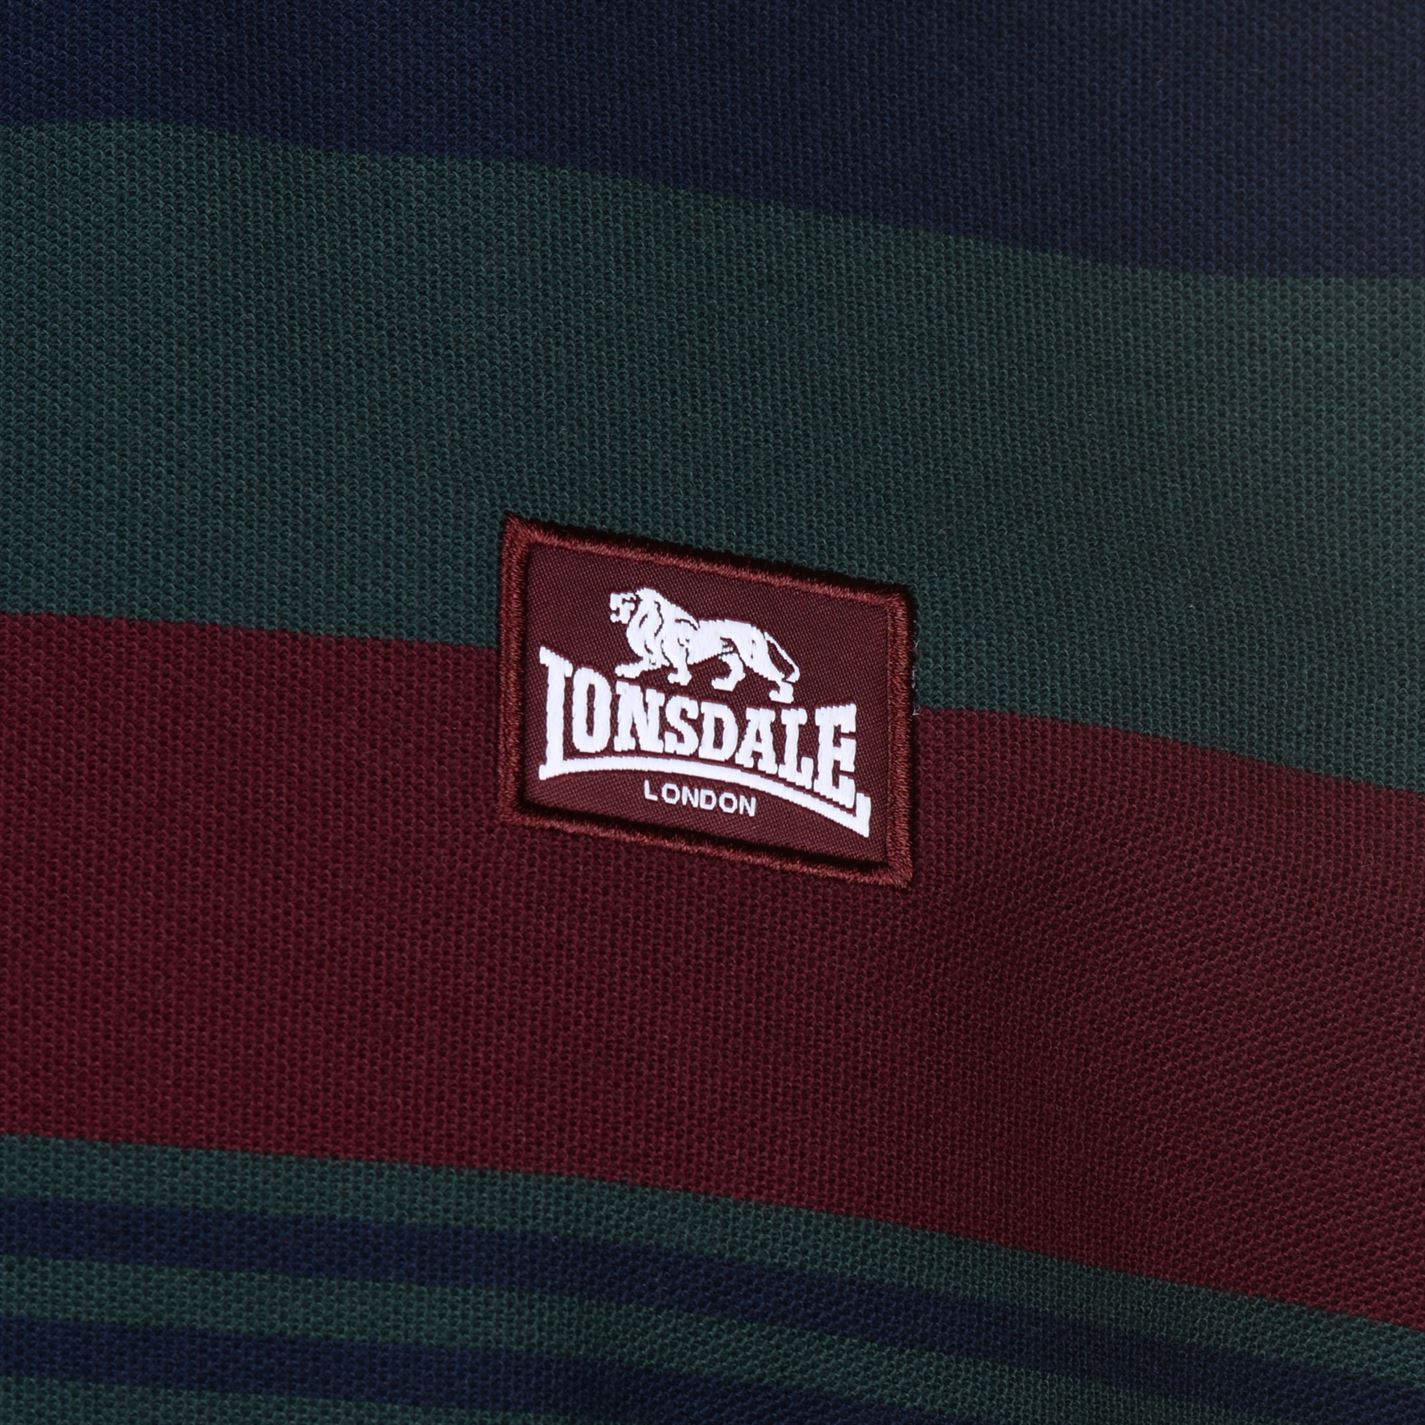 Lonsdale-Mens-Stripe-Polo-Shirt-Classic-Fit-Tee-Top-Short-Sleeve-Button-Placket thumbnail 9